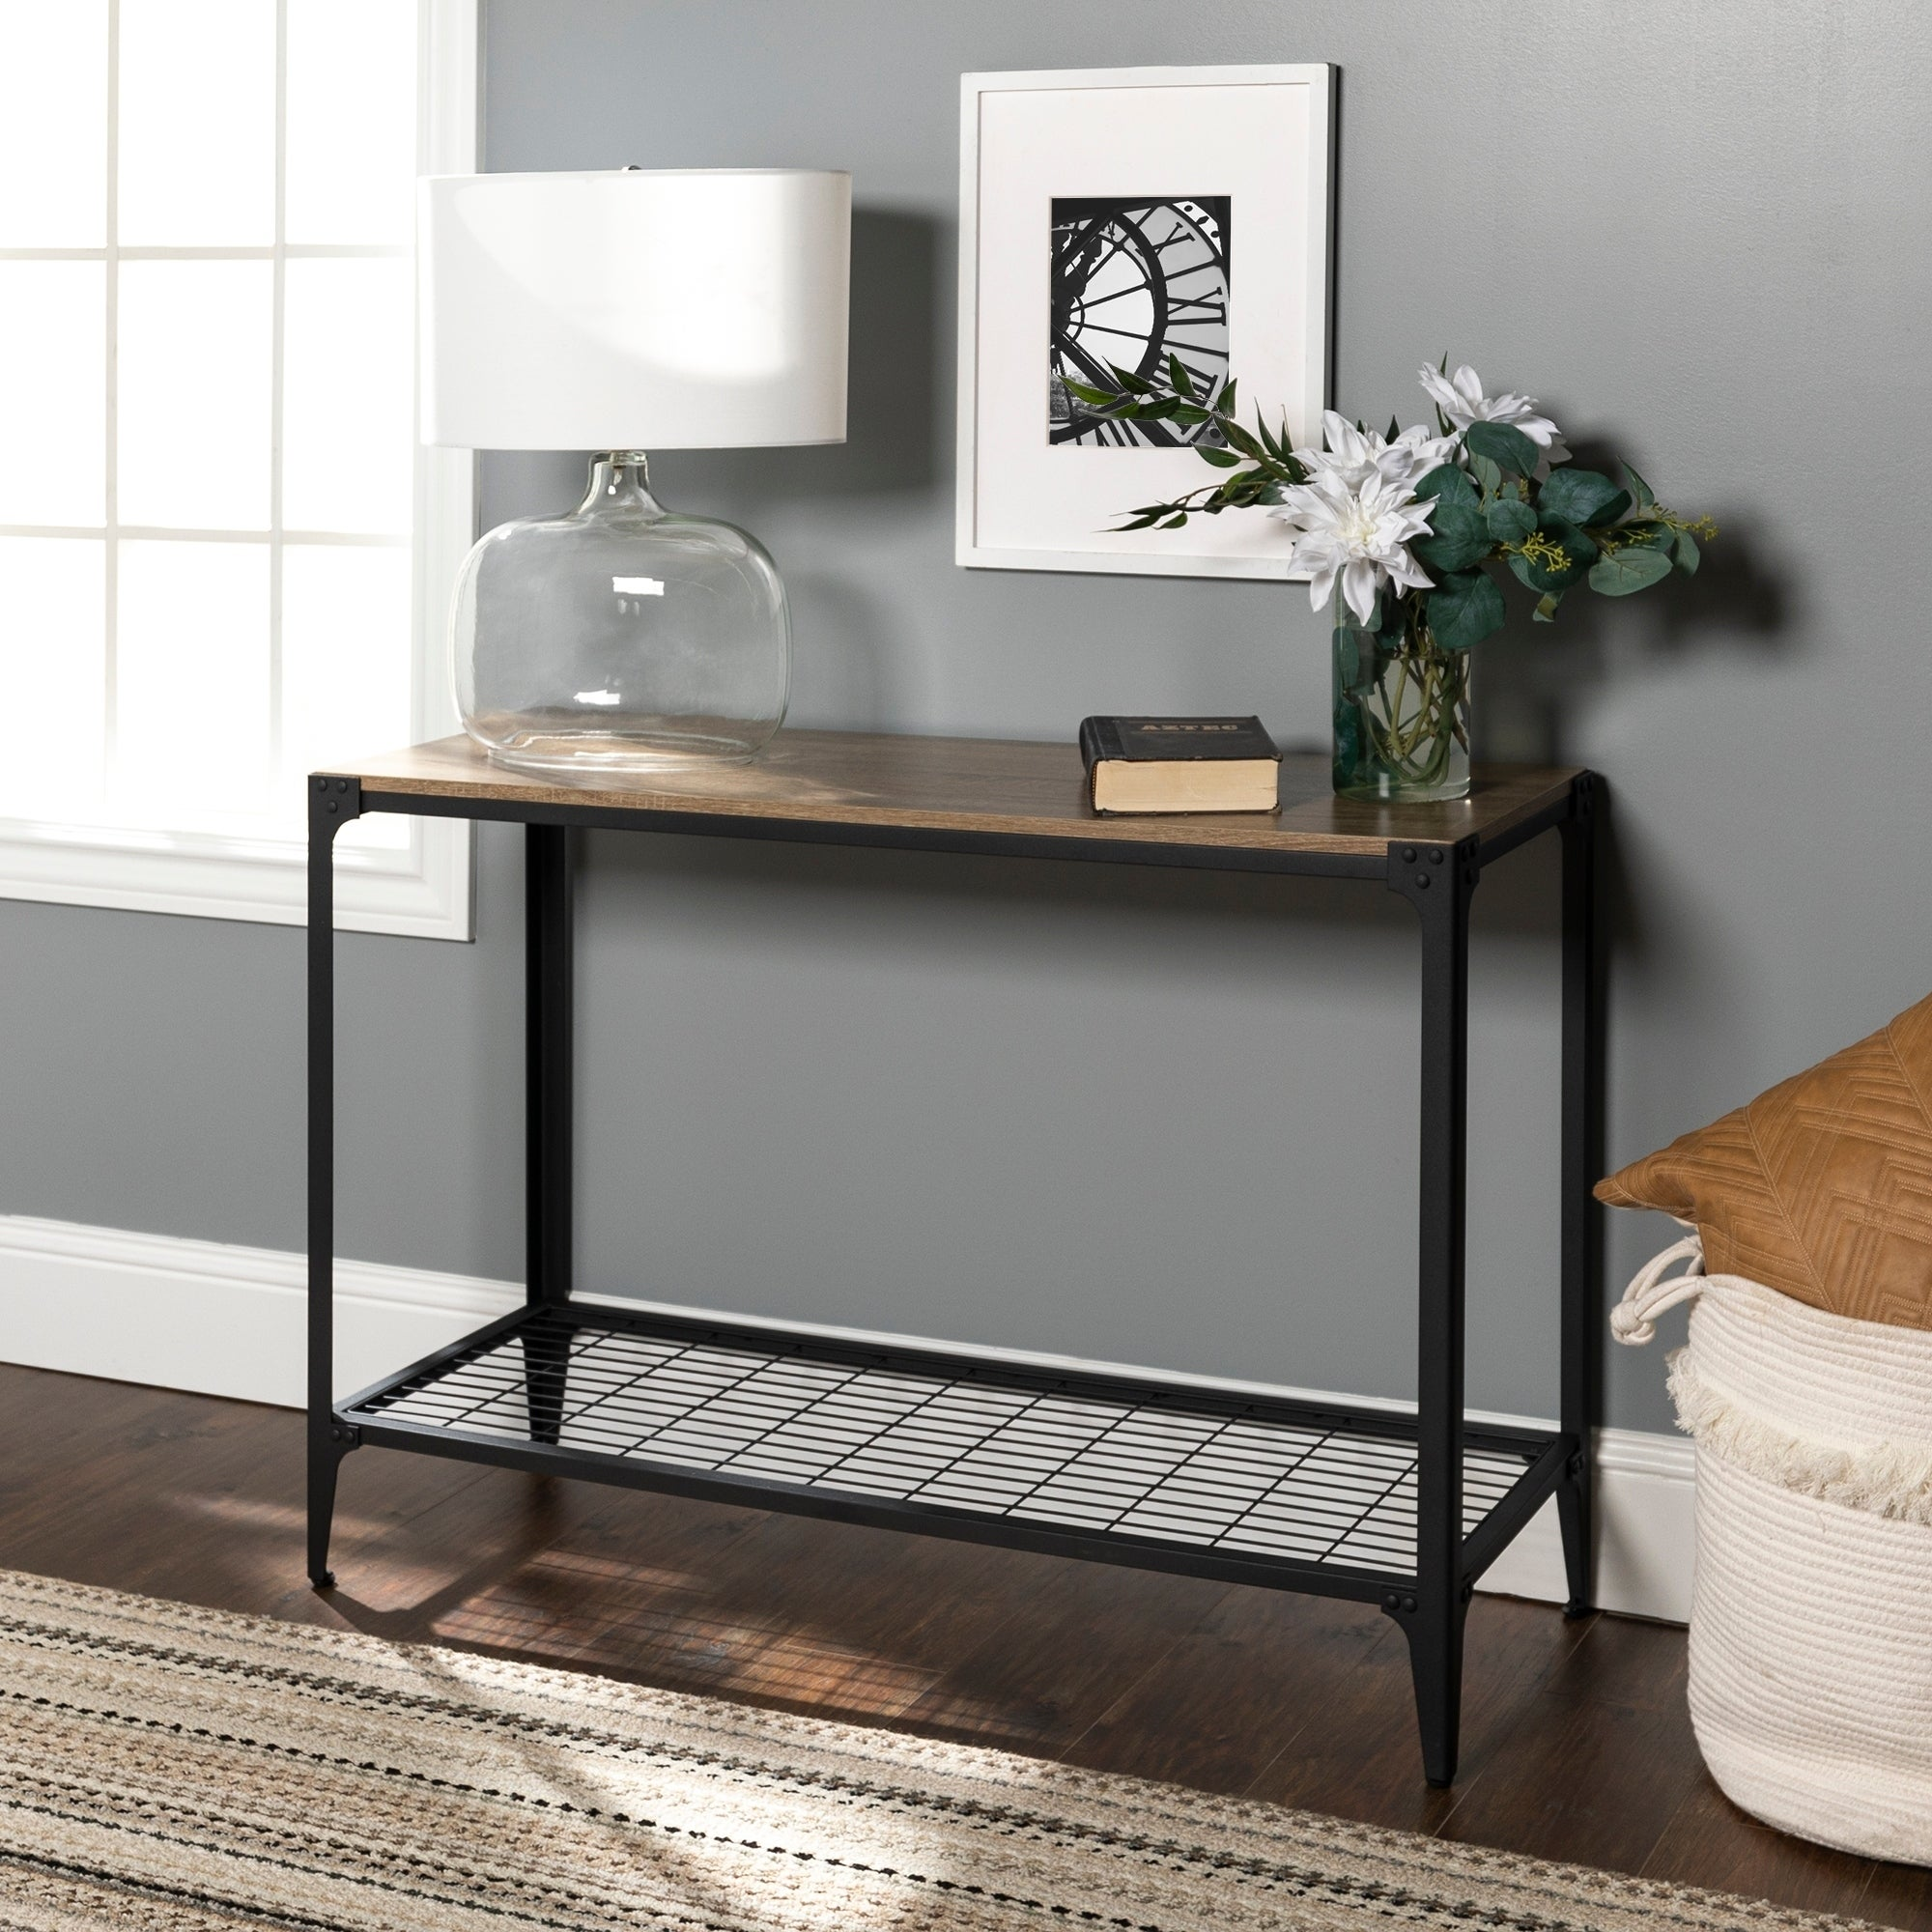 newest 7edfd 163df Carbon Loft Witten Angle Iron and Driftwood Entry Table - 44 x 16 x 30h